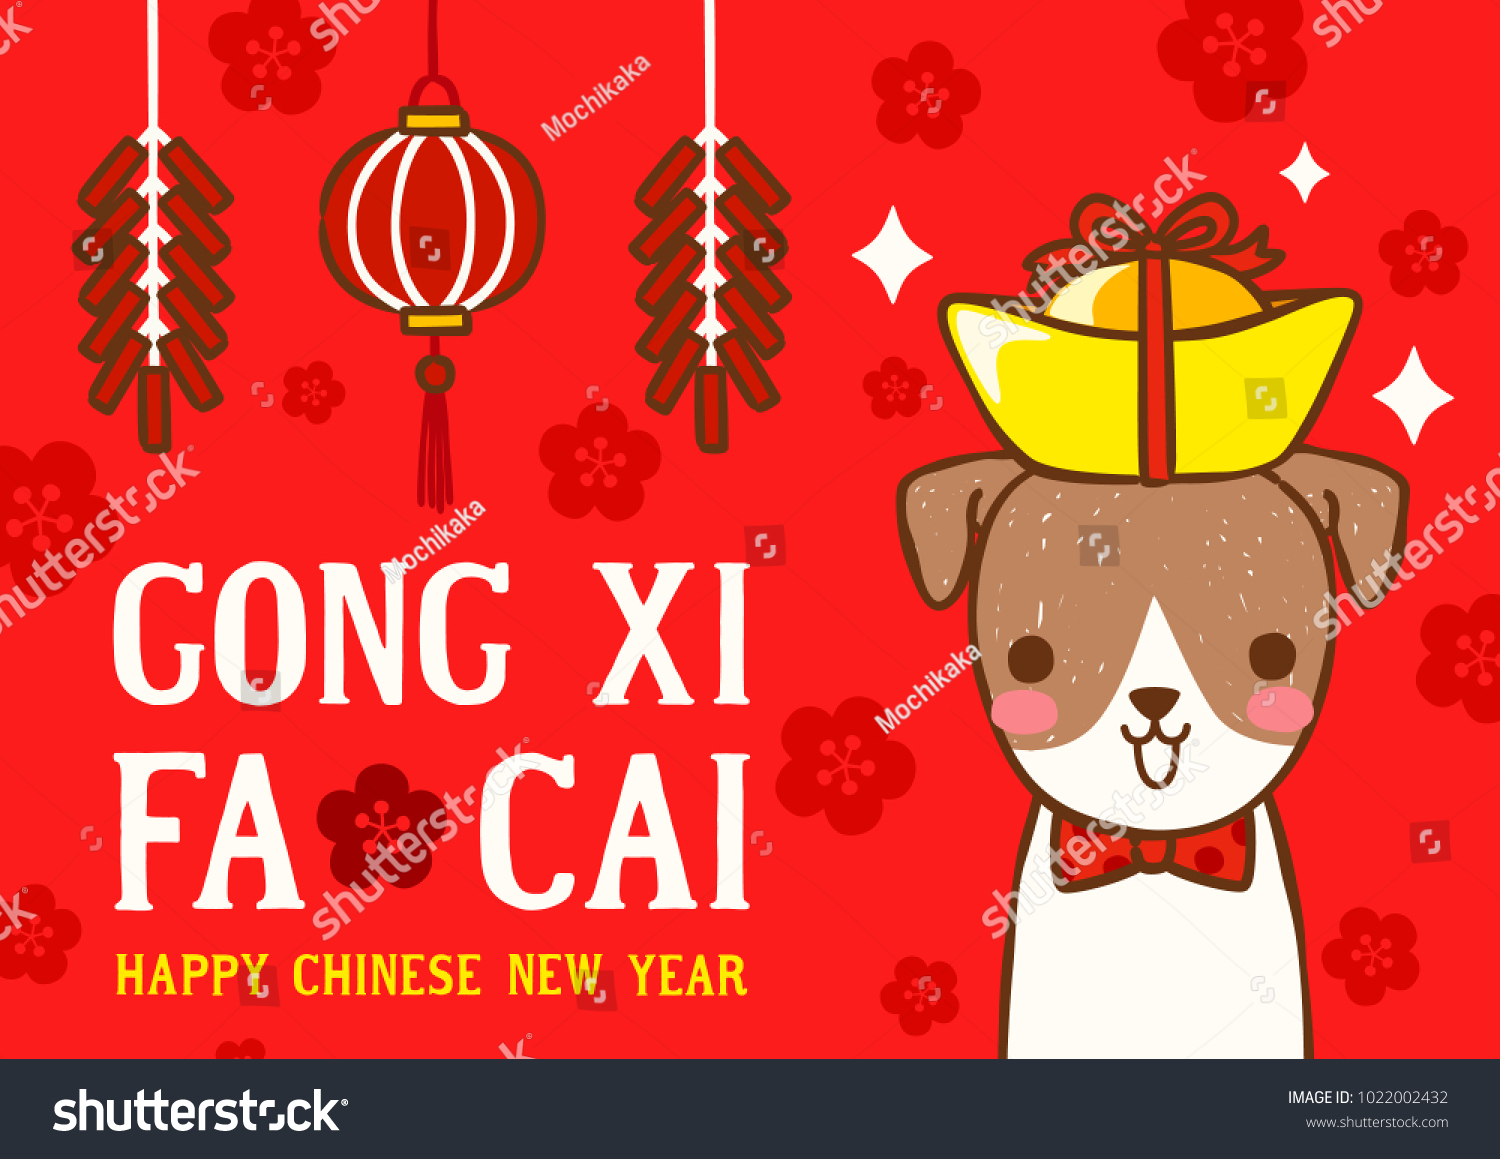 Happy chinese new year cute cartoon stock vector royalty free happy chinese new year with cute cartoon dog and gong xi fa cai greeting m4hsunfo